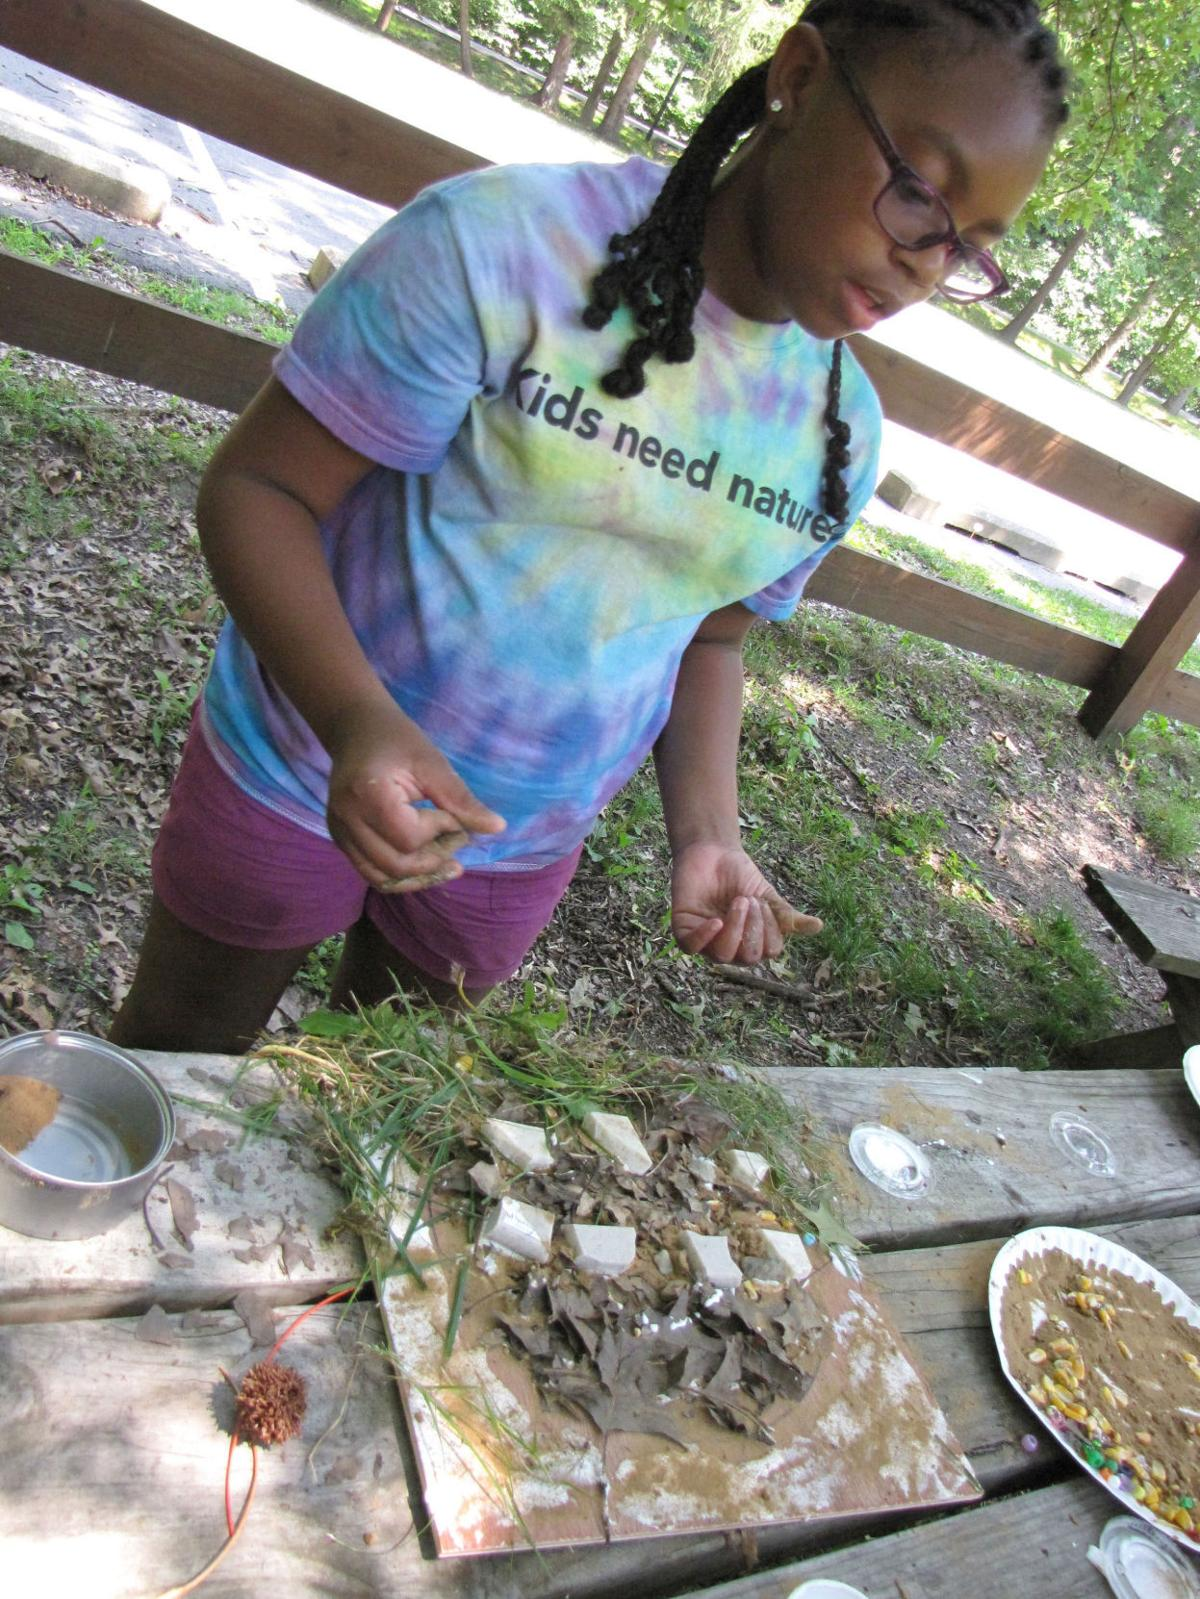 Dunes Blog: Learning about the ecosystem by making art